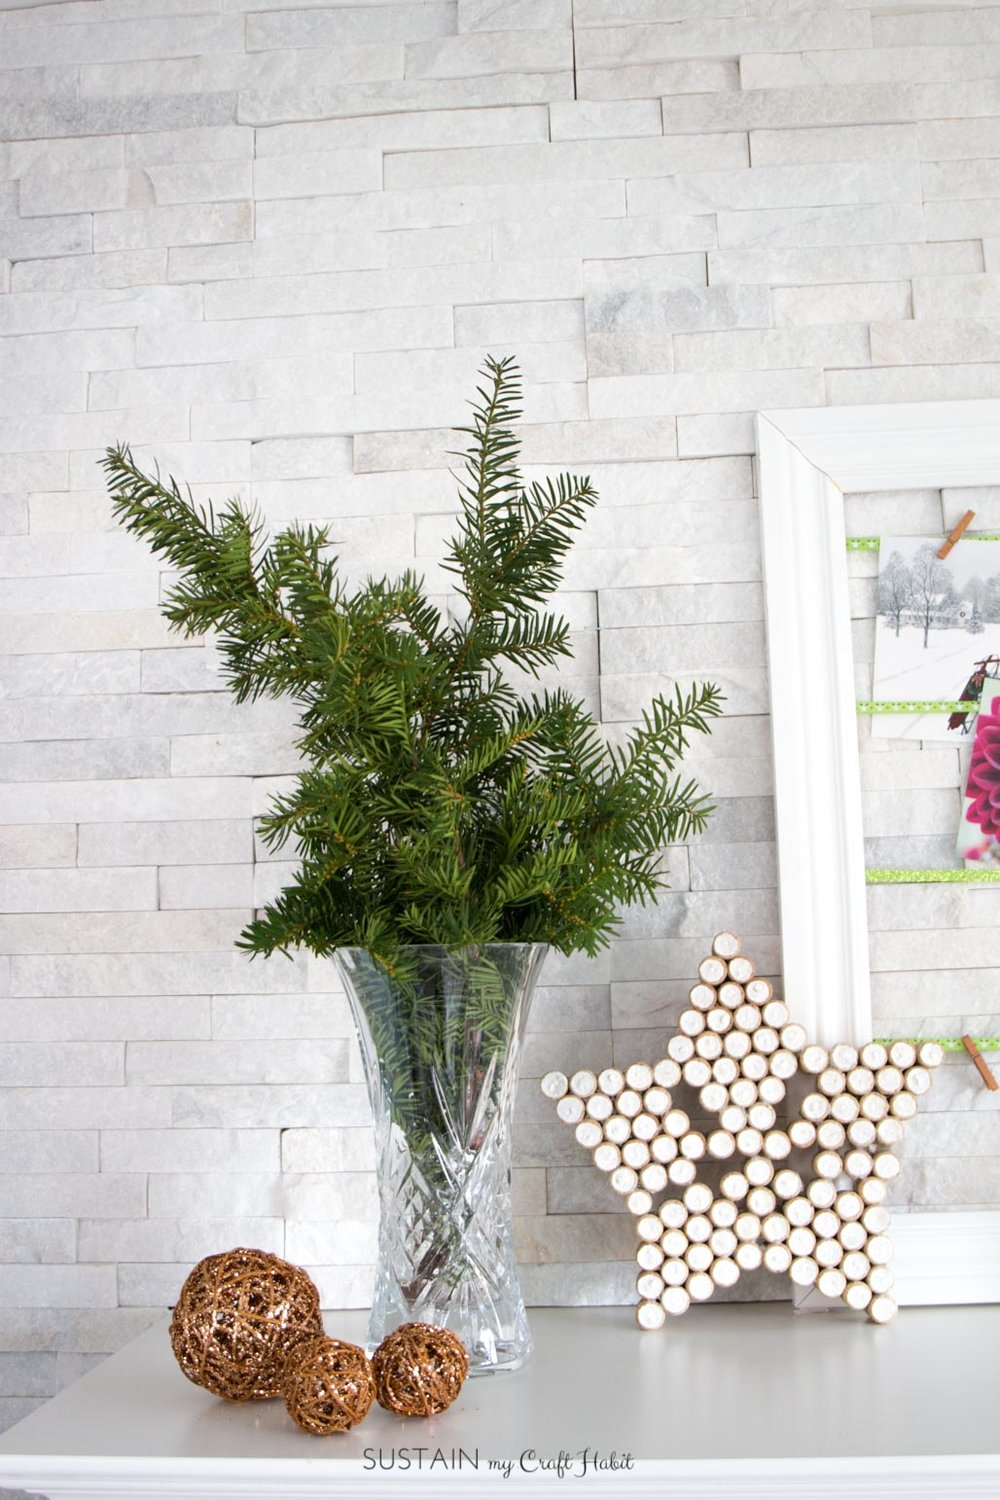 Foraged winter greens for a rustic Christmas fireplace mantel | Scandinavian style holiday mantle decorating ideas